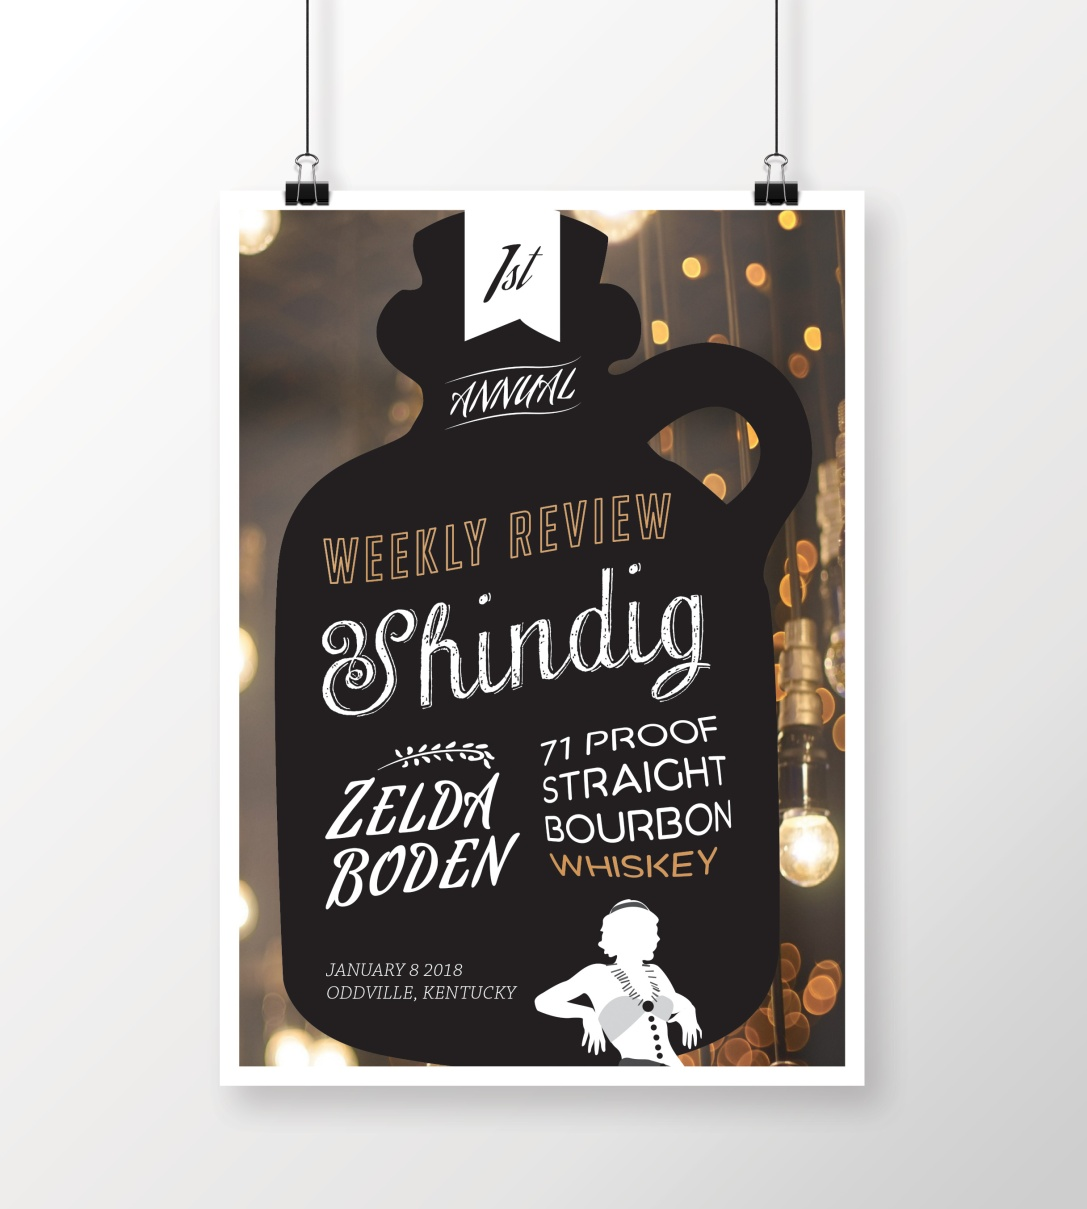 Zelda Boden Whiskey Event Poster